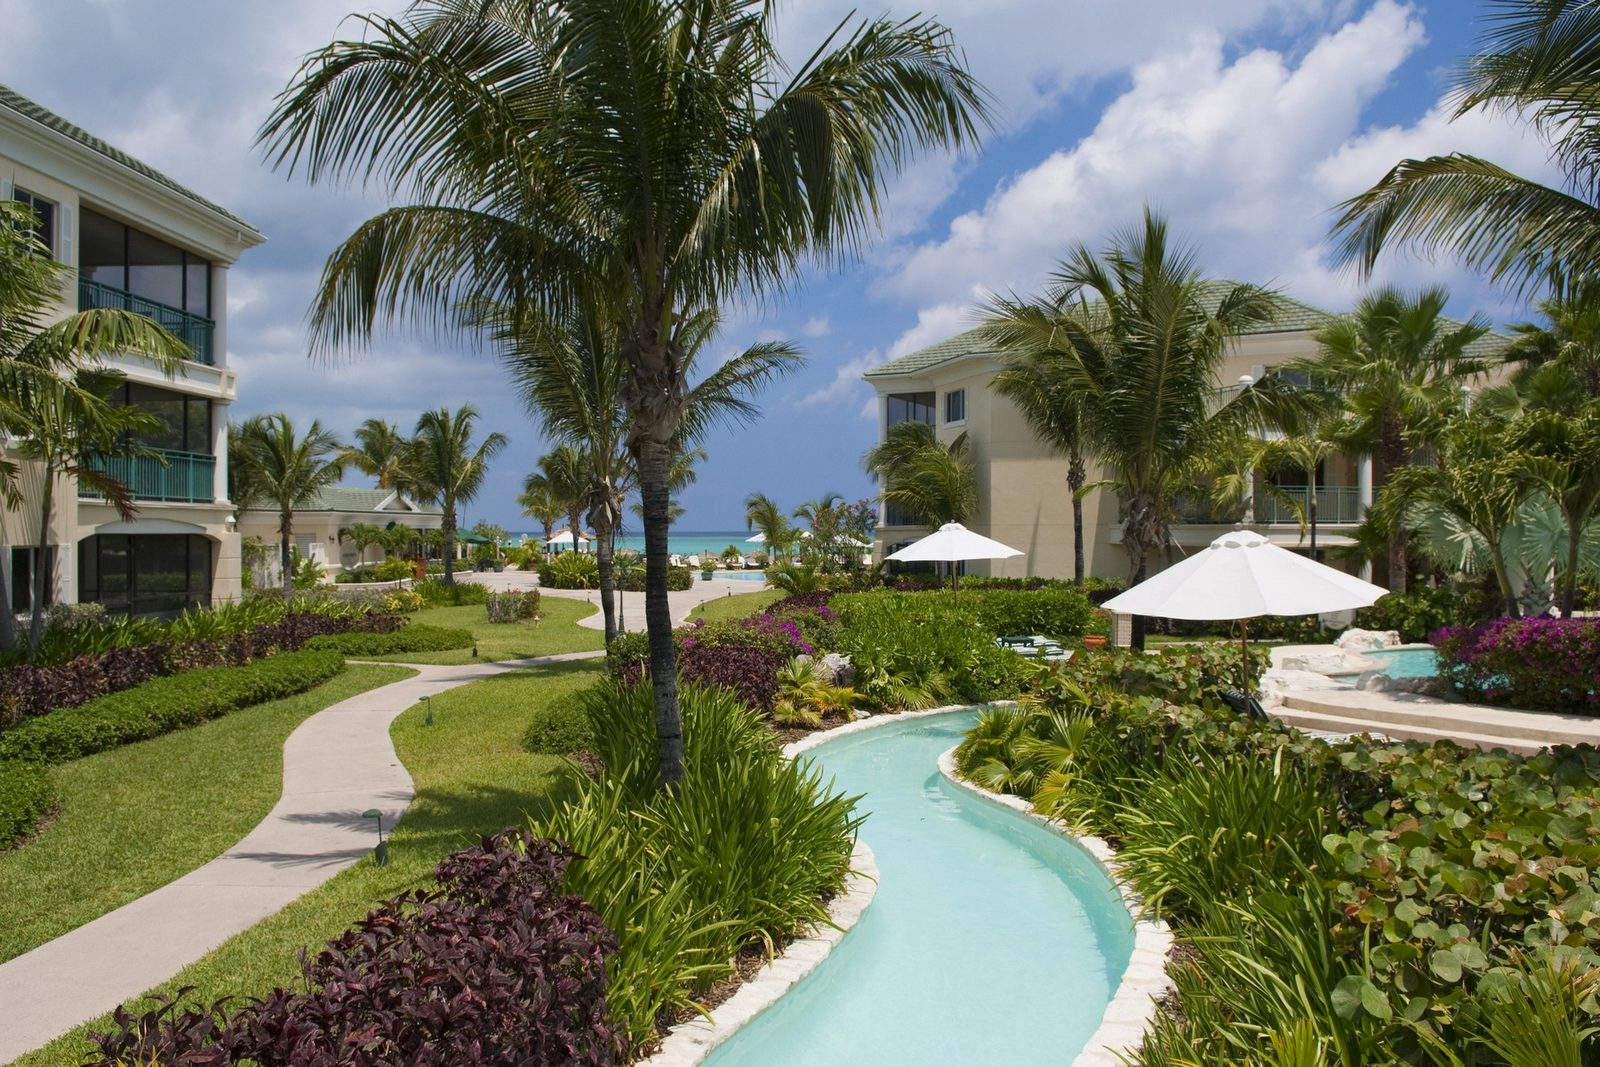 1 bedroom suites for sale grace bay turks and caicos 3 for Bedroom suites for sale